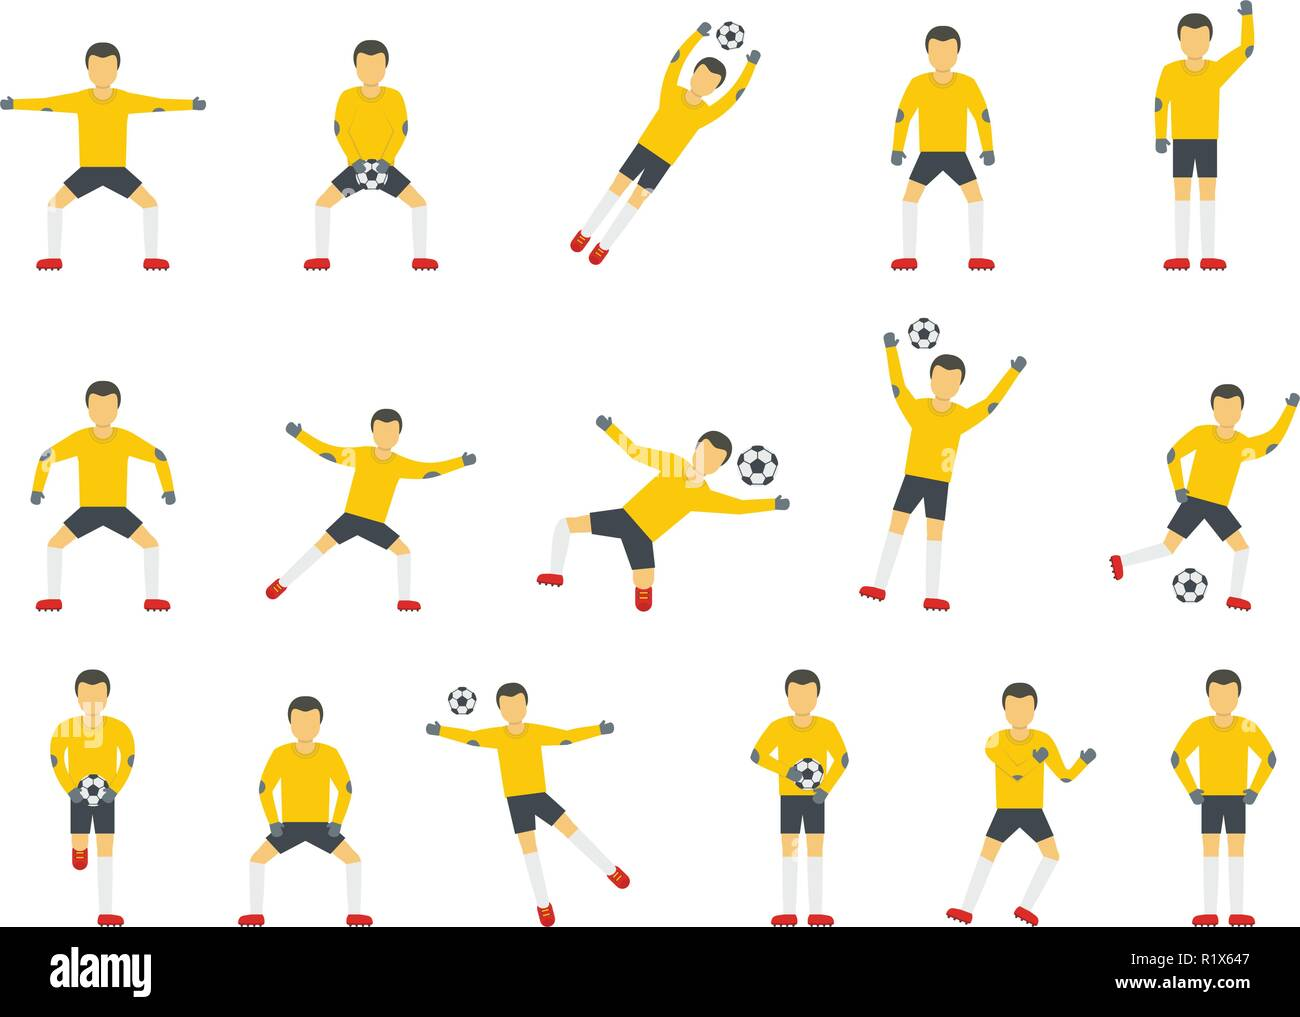 Goalkeeper man icons set. Flat illustration of 15 goalkeeper man vector icons for web - Stock Image